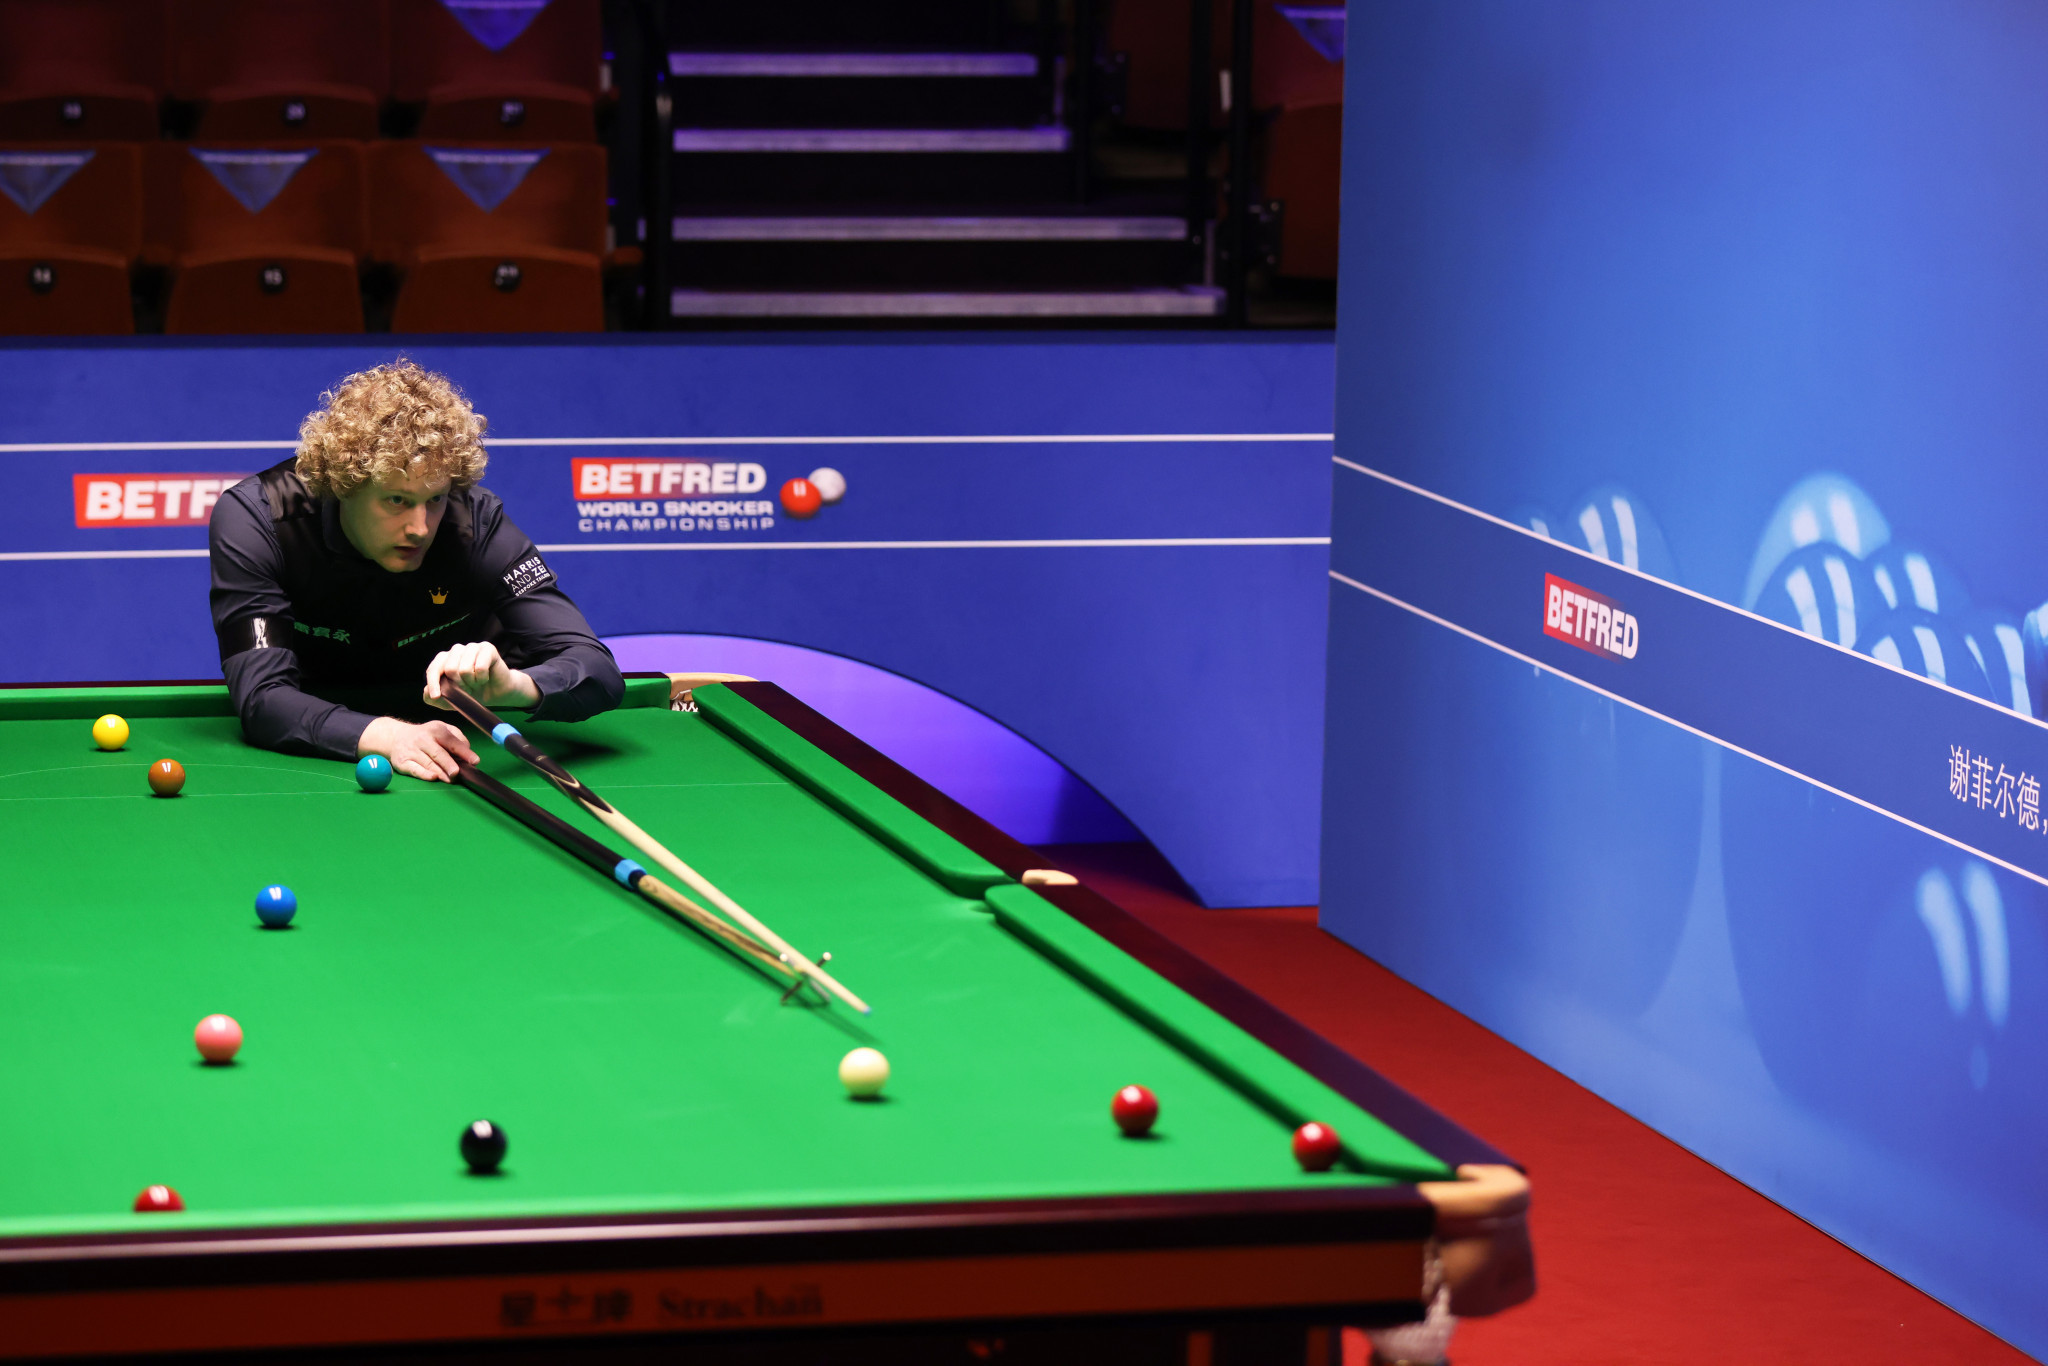 World number three Neil Robertson of Australia opened up a 6-3 lead against China's Liang Wenbo in their first round match at The Crucible Theatre ©Getty Images